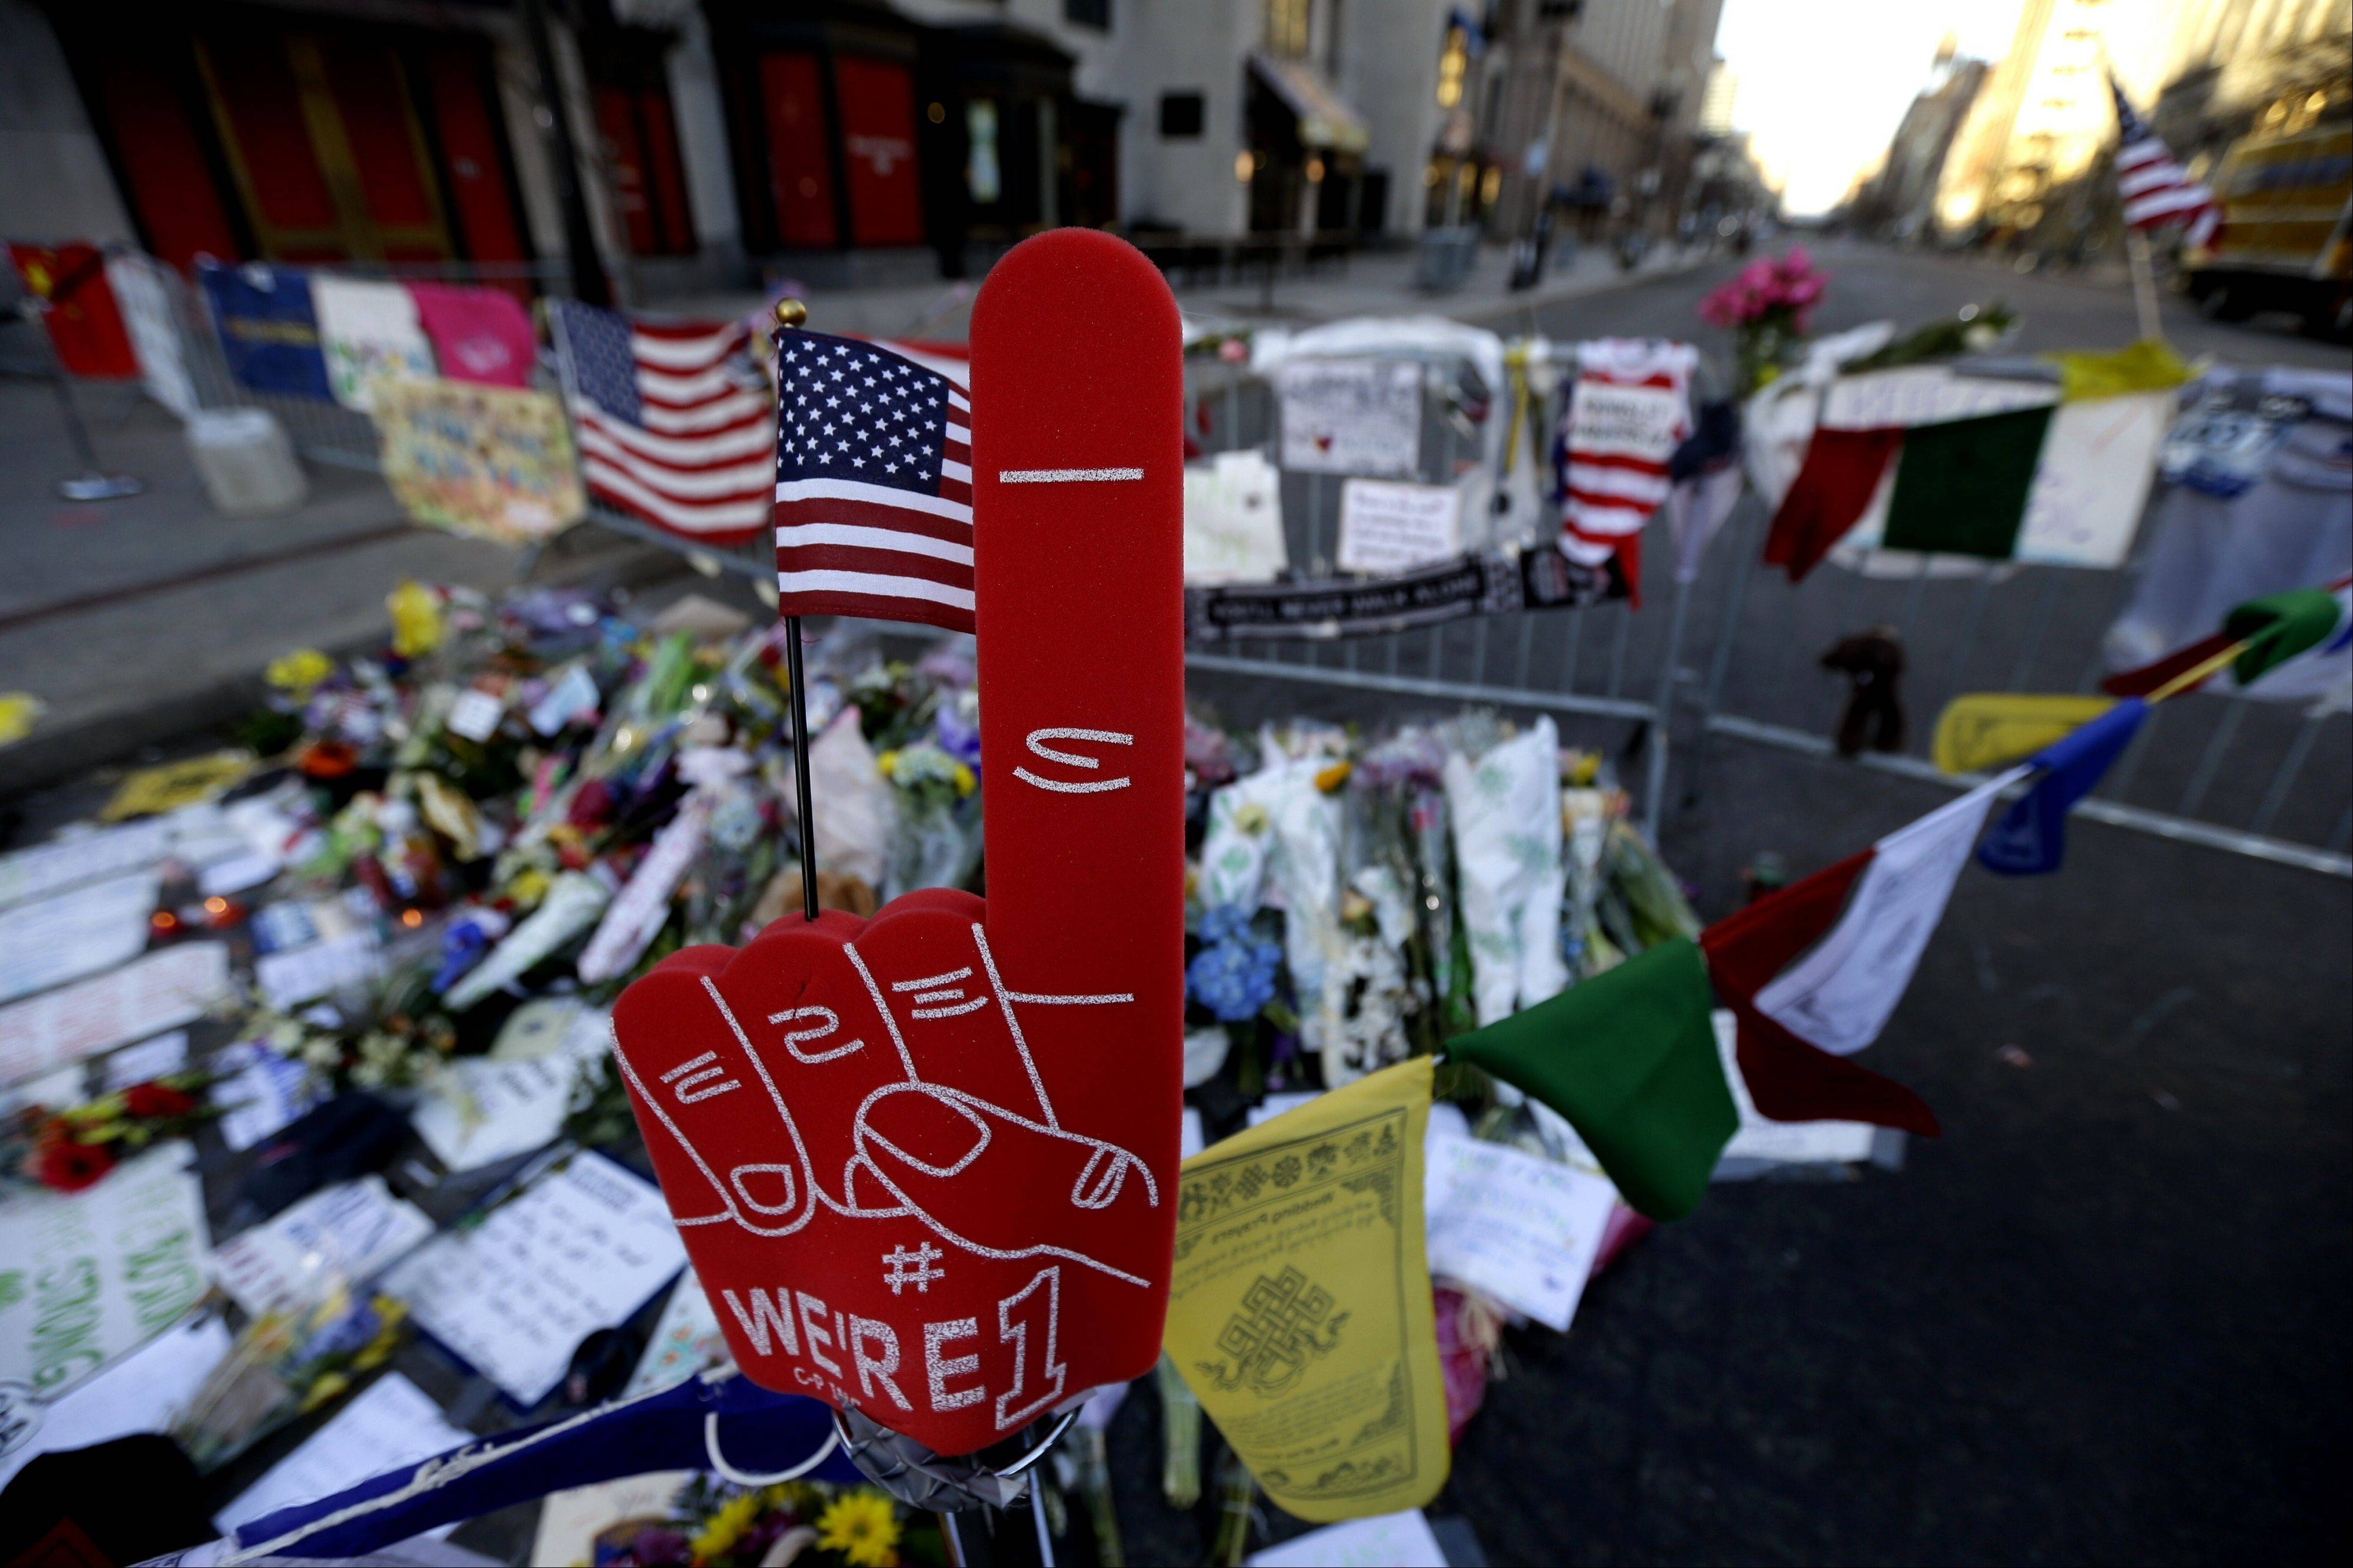 A foam finger stands at a makeshift memorial on Boylston Street in Boston, near the blast site of the Boston Marathon explosions, Thursday, April 18, 2013. The city continues to cope following Monday's explosions near the finish line of the marathon.